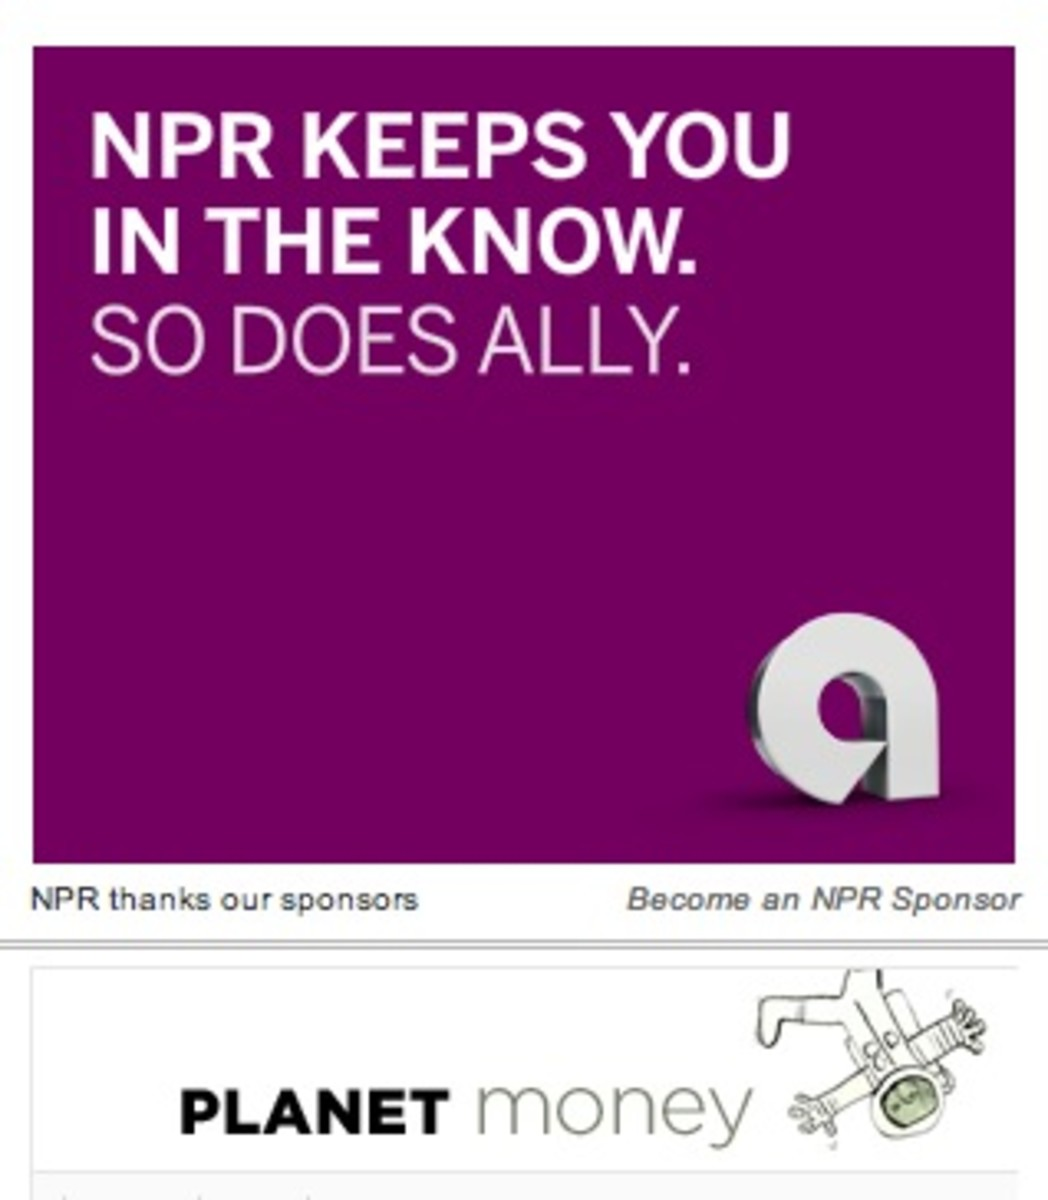 planet-money-ally-bank-exclusive sponsor